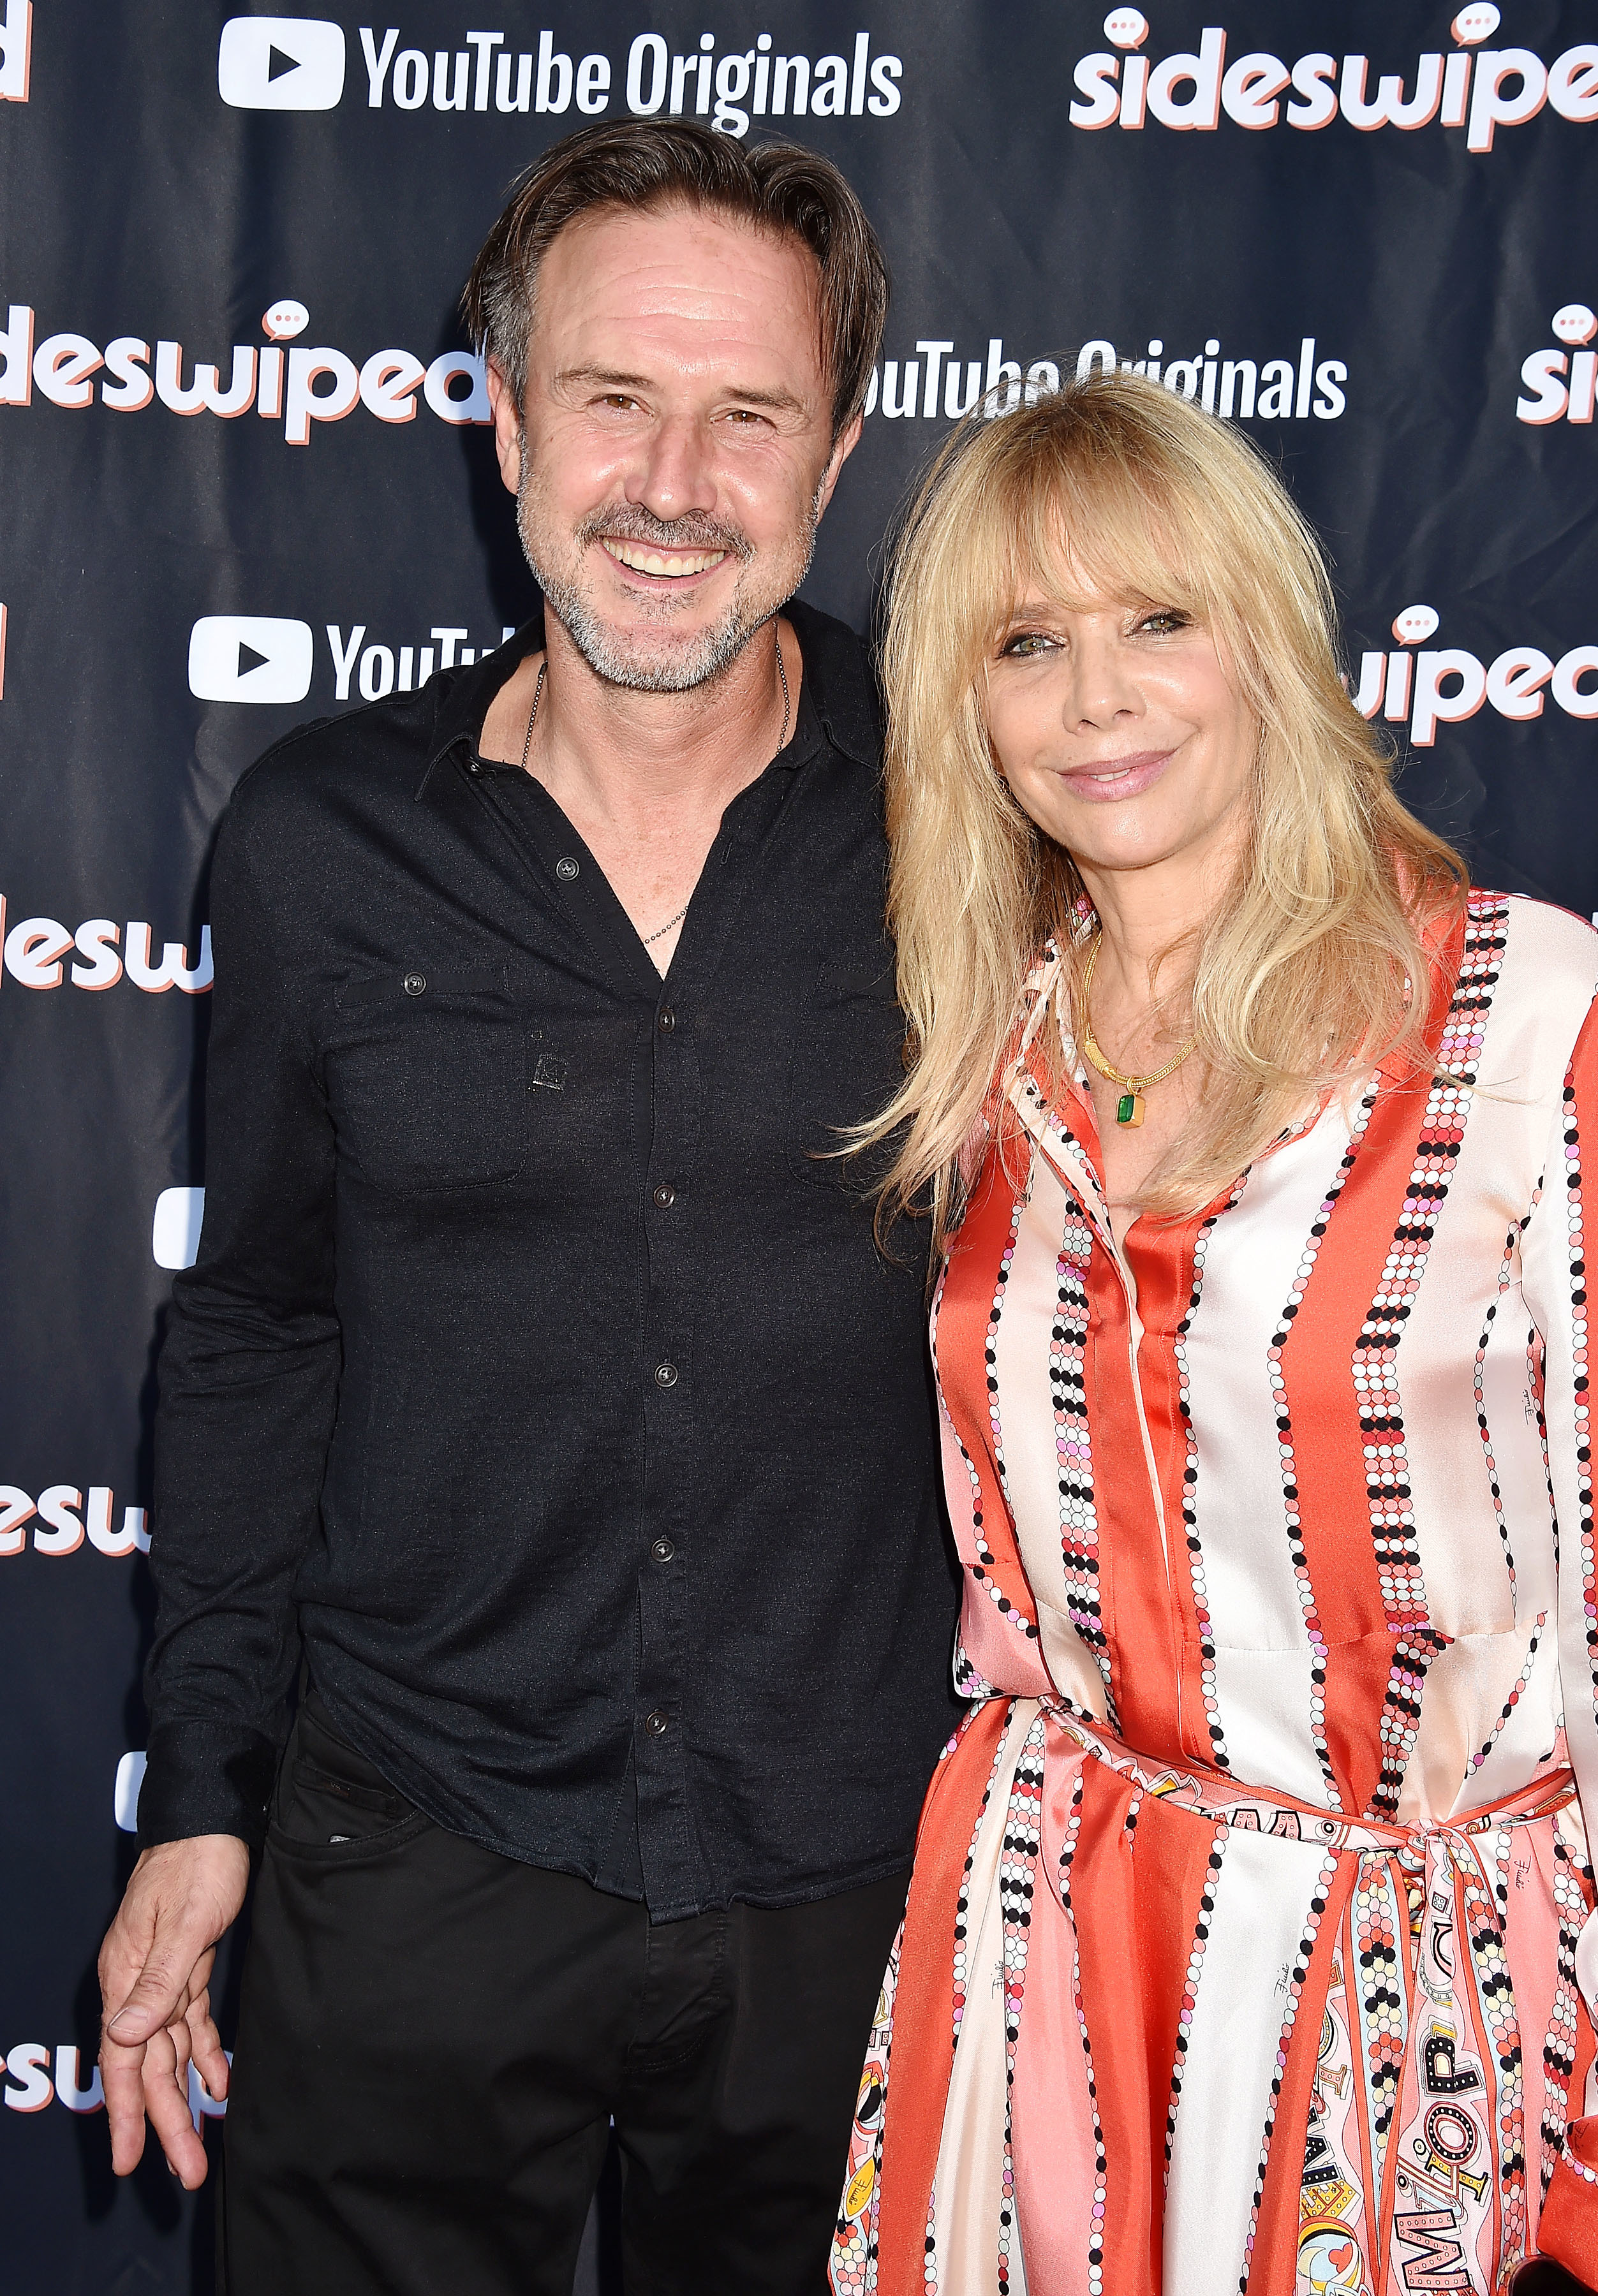 David Arquette and Rosanna Arquette attend the premiere of YouTube Originals' Sideswiped at the YouTube Space in Los Angeles on July 27, 2018.